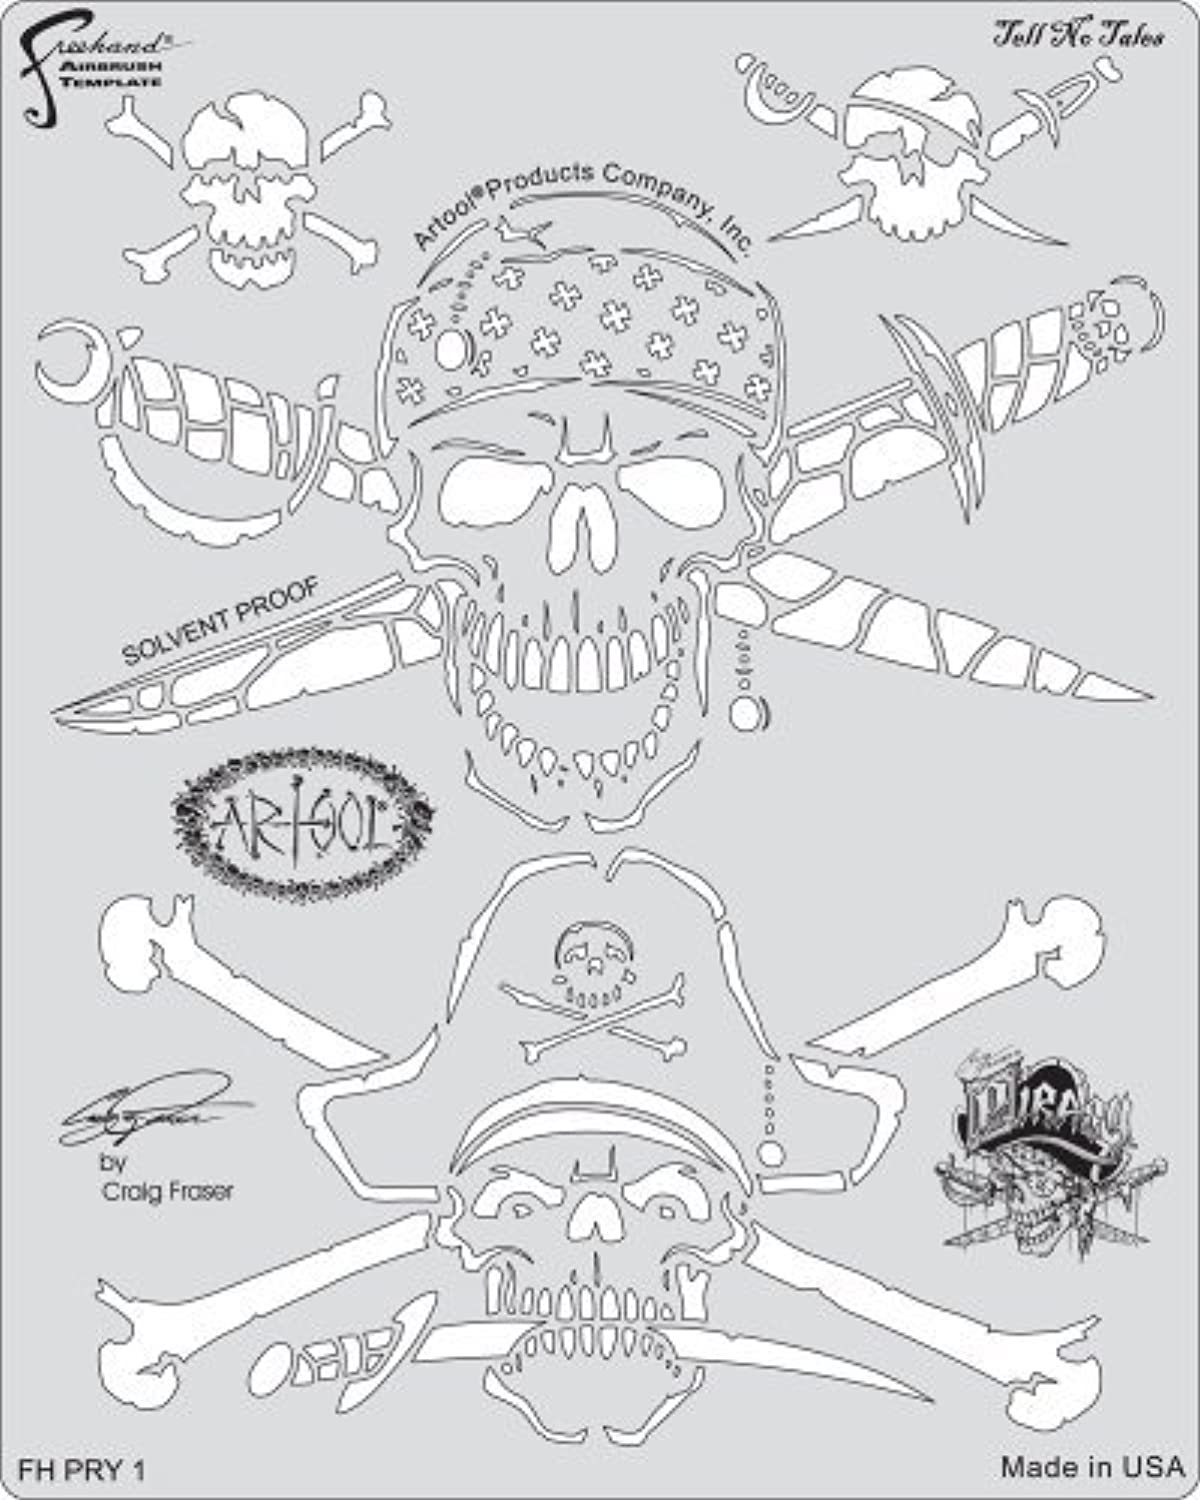 Unbekannt Artool Freehand Airbrush Templates, Tell No Tales Template by Iwata-Medea